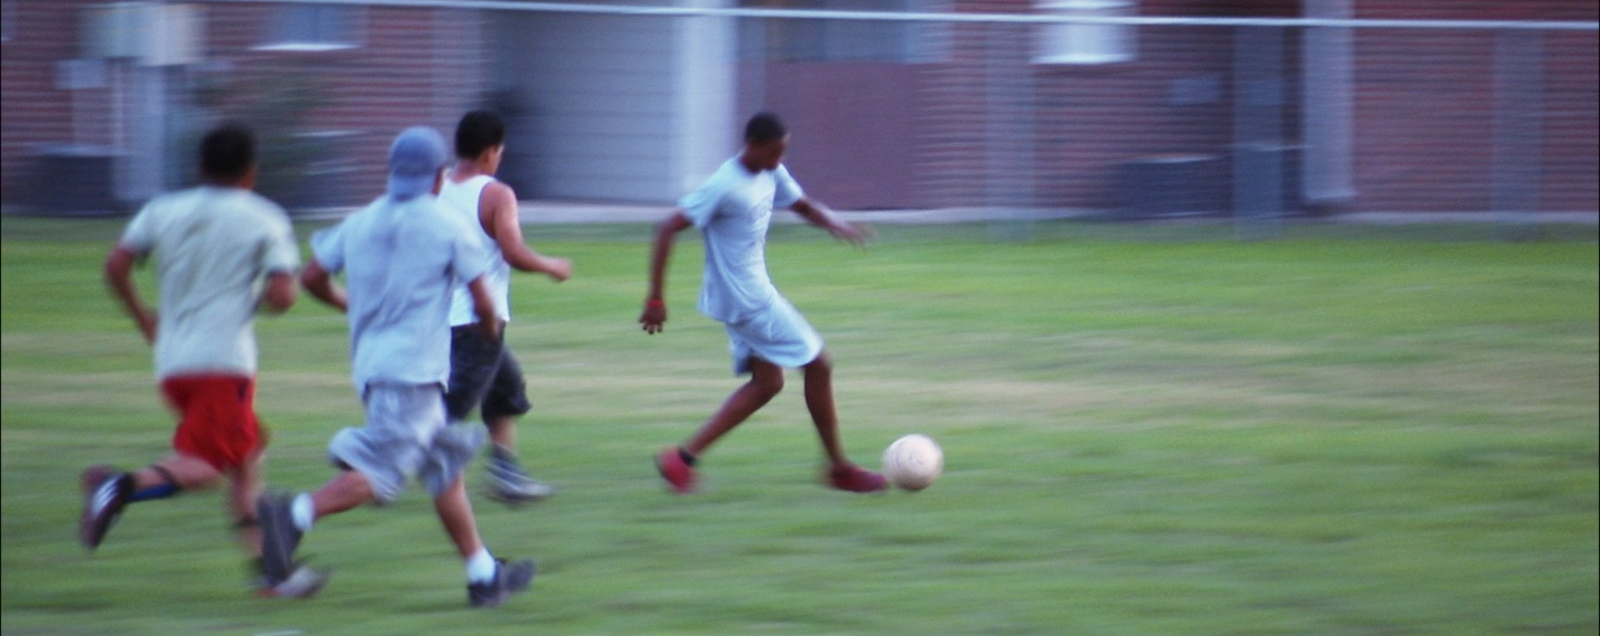 A group of teens playing soccer.